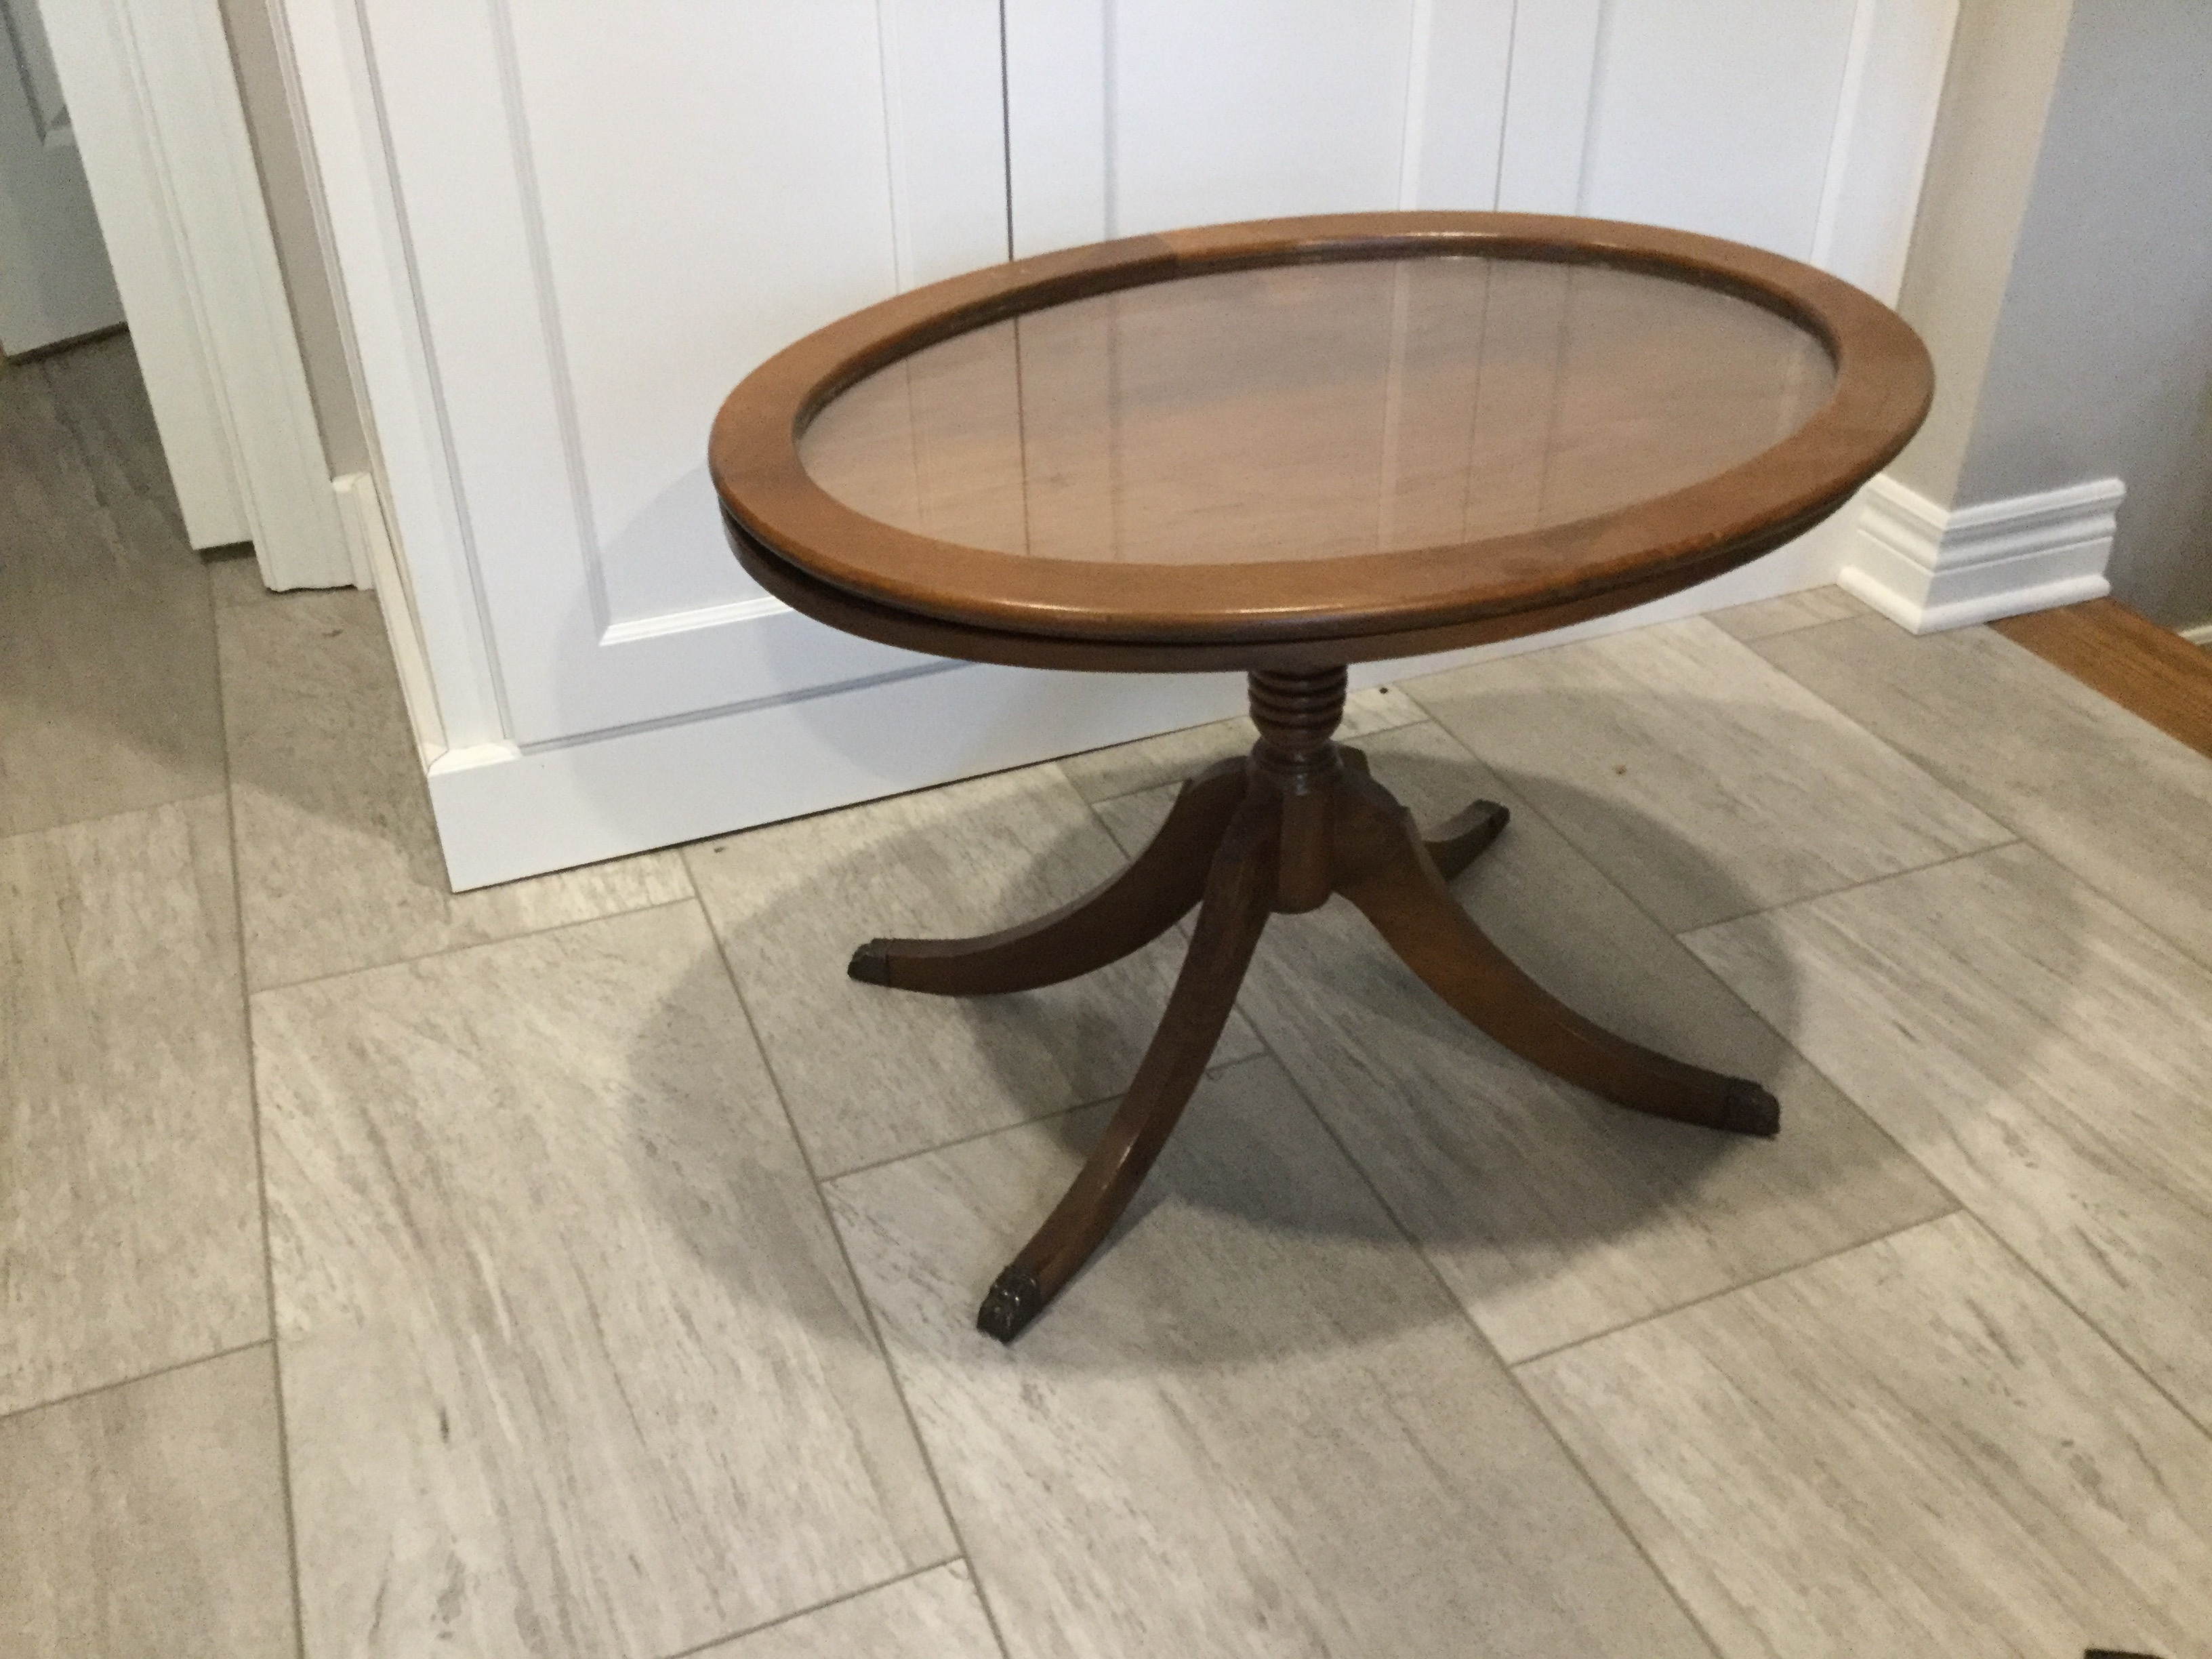 Small oval table